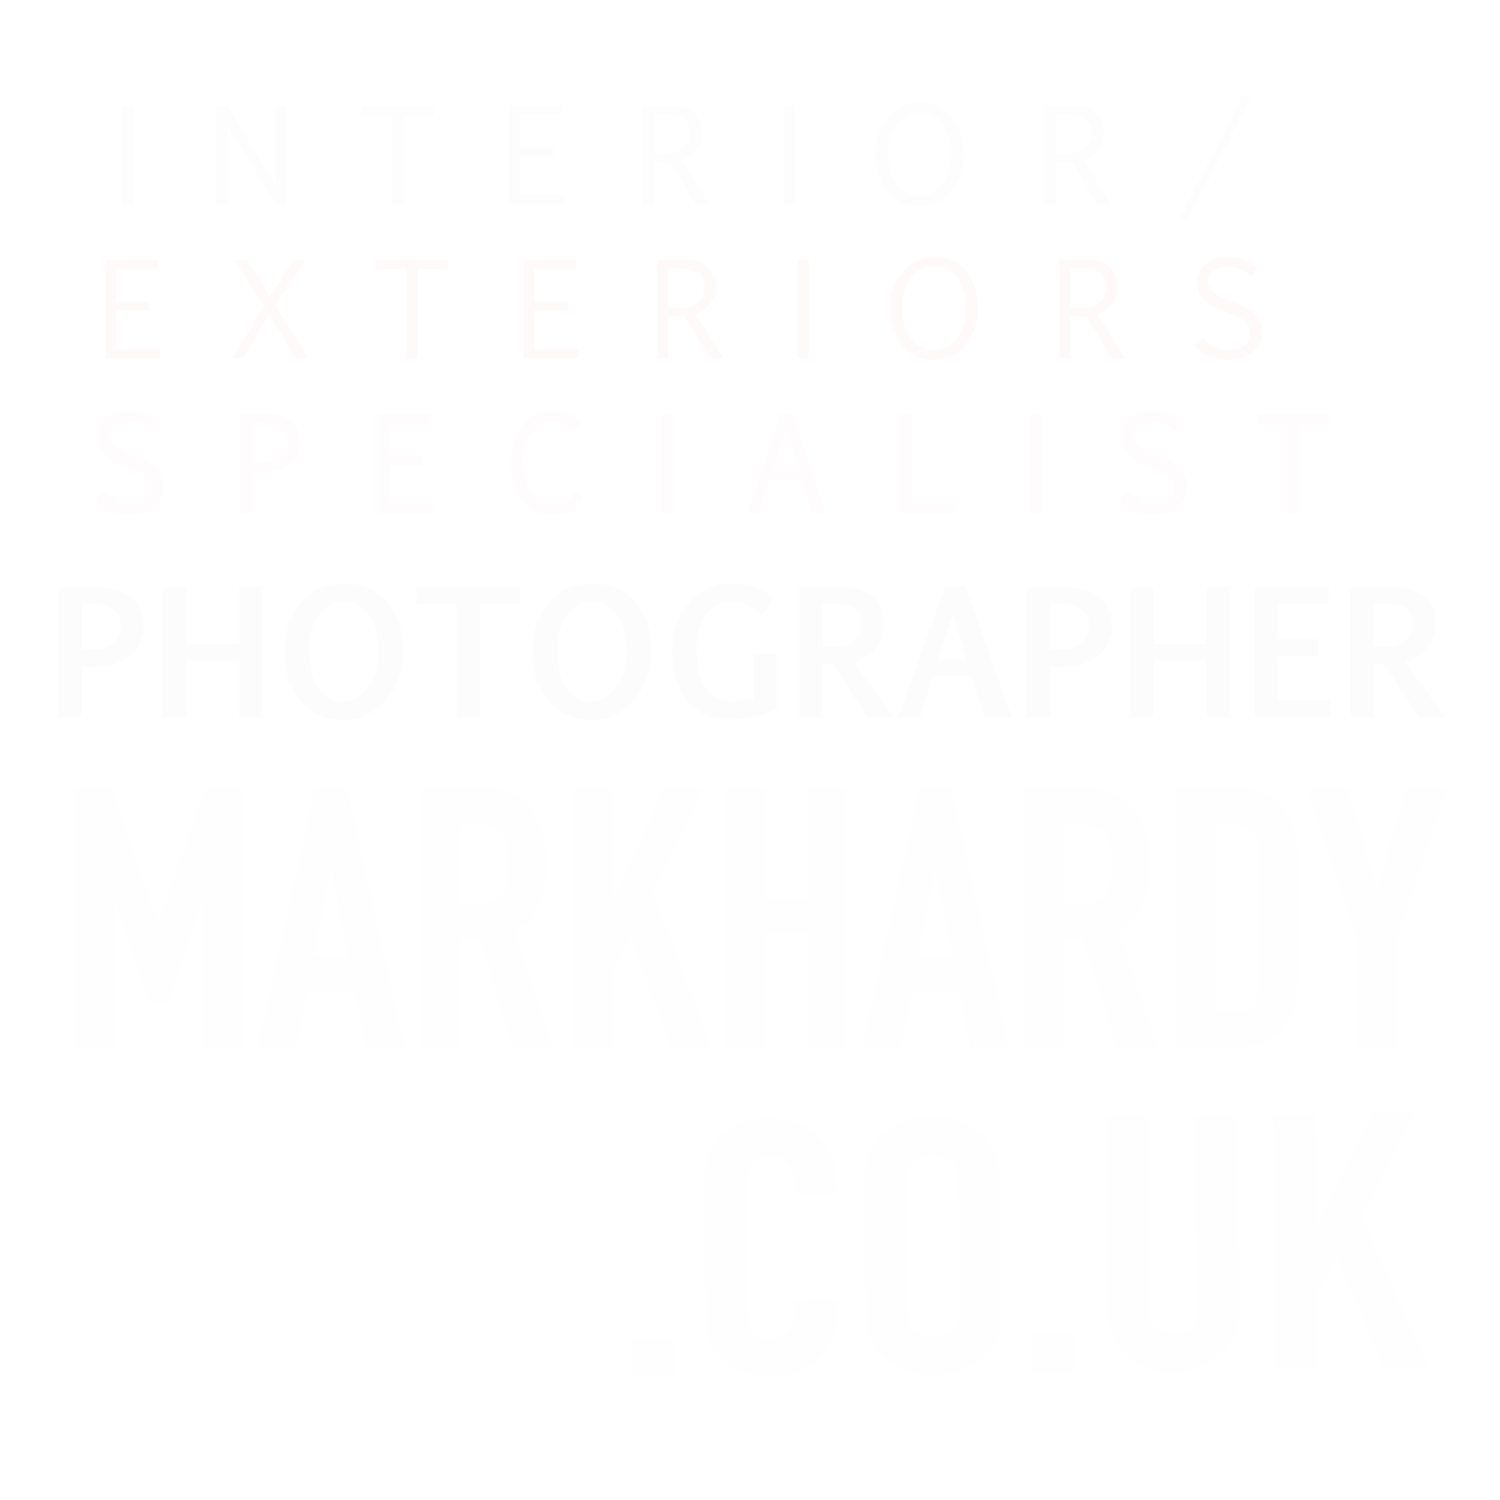 Mark Hardy Surrey Architectural Interiors photographer